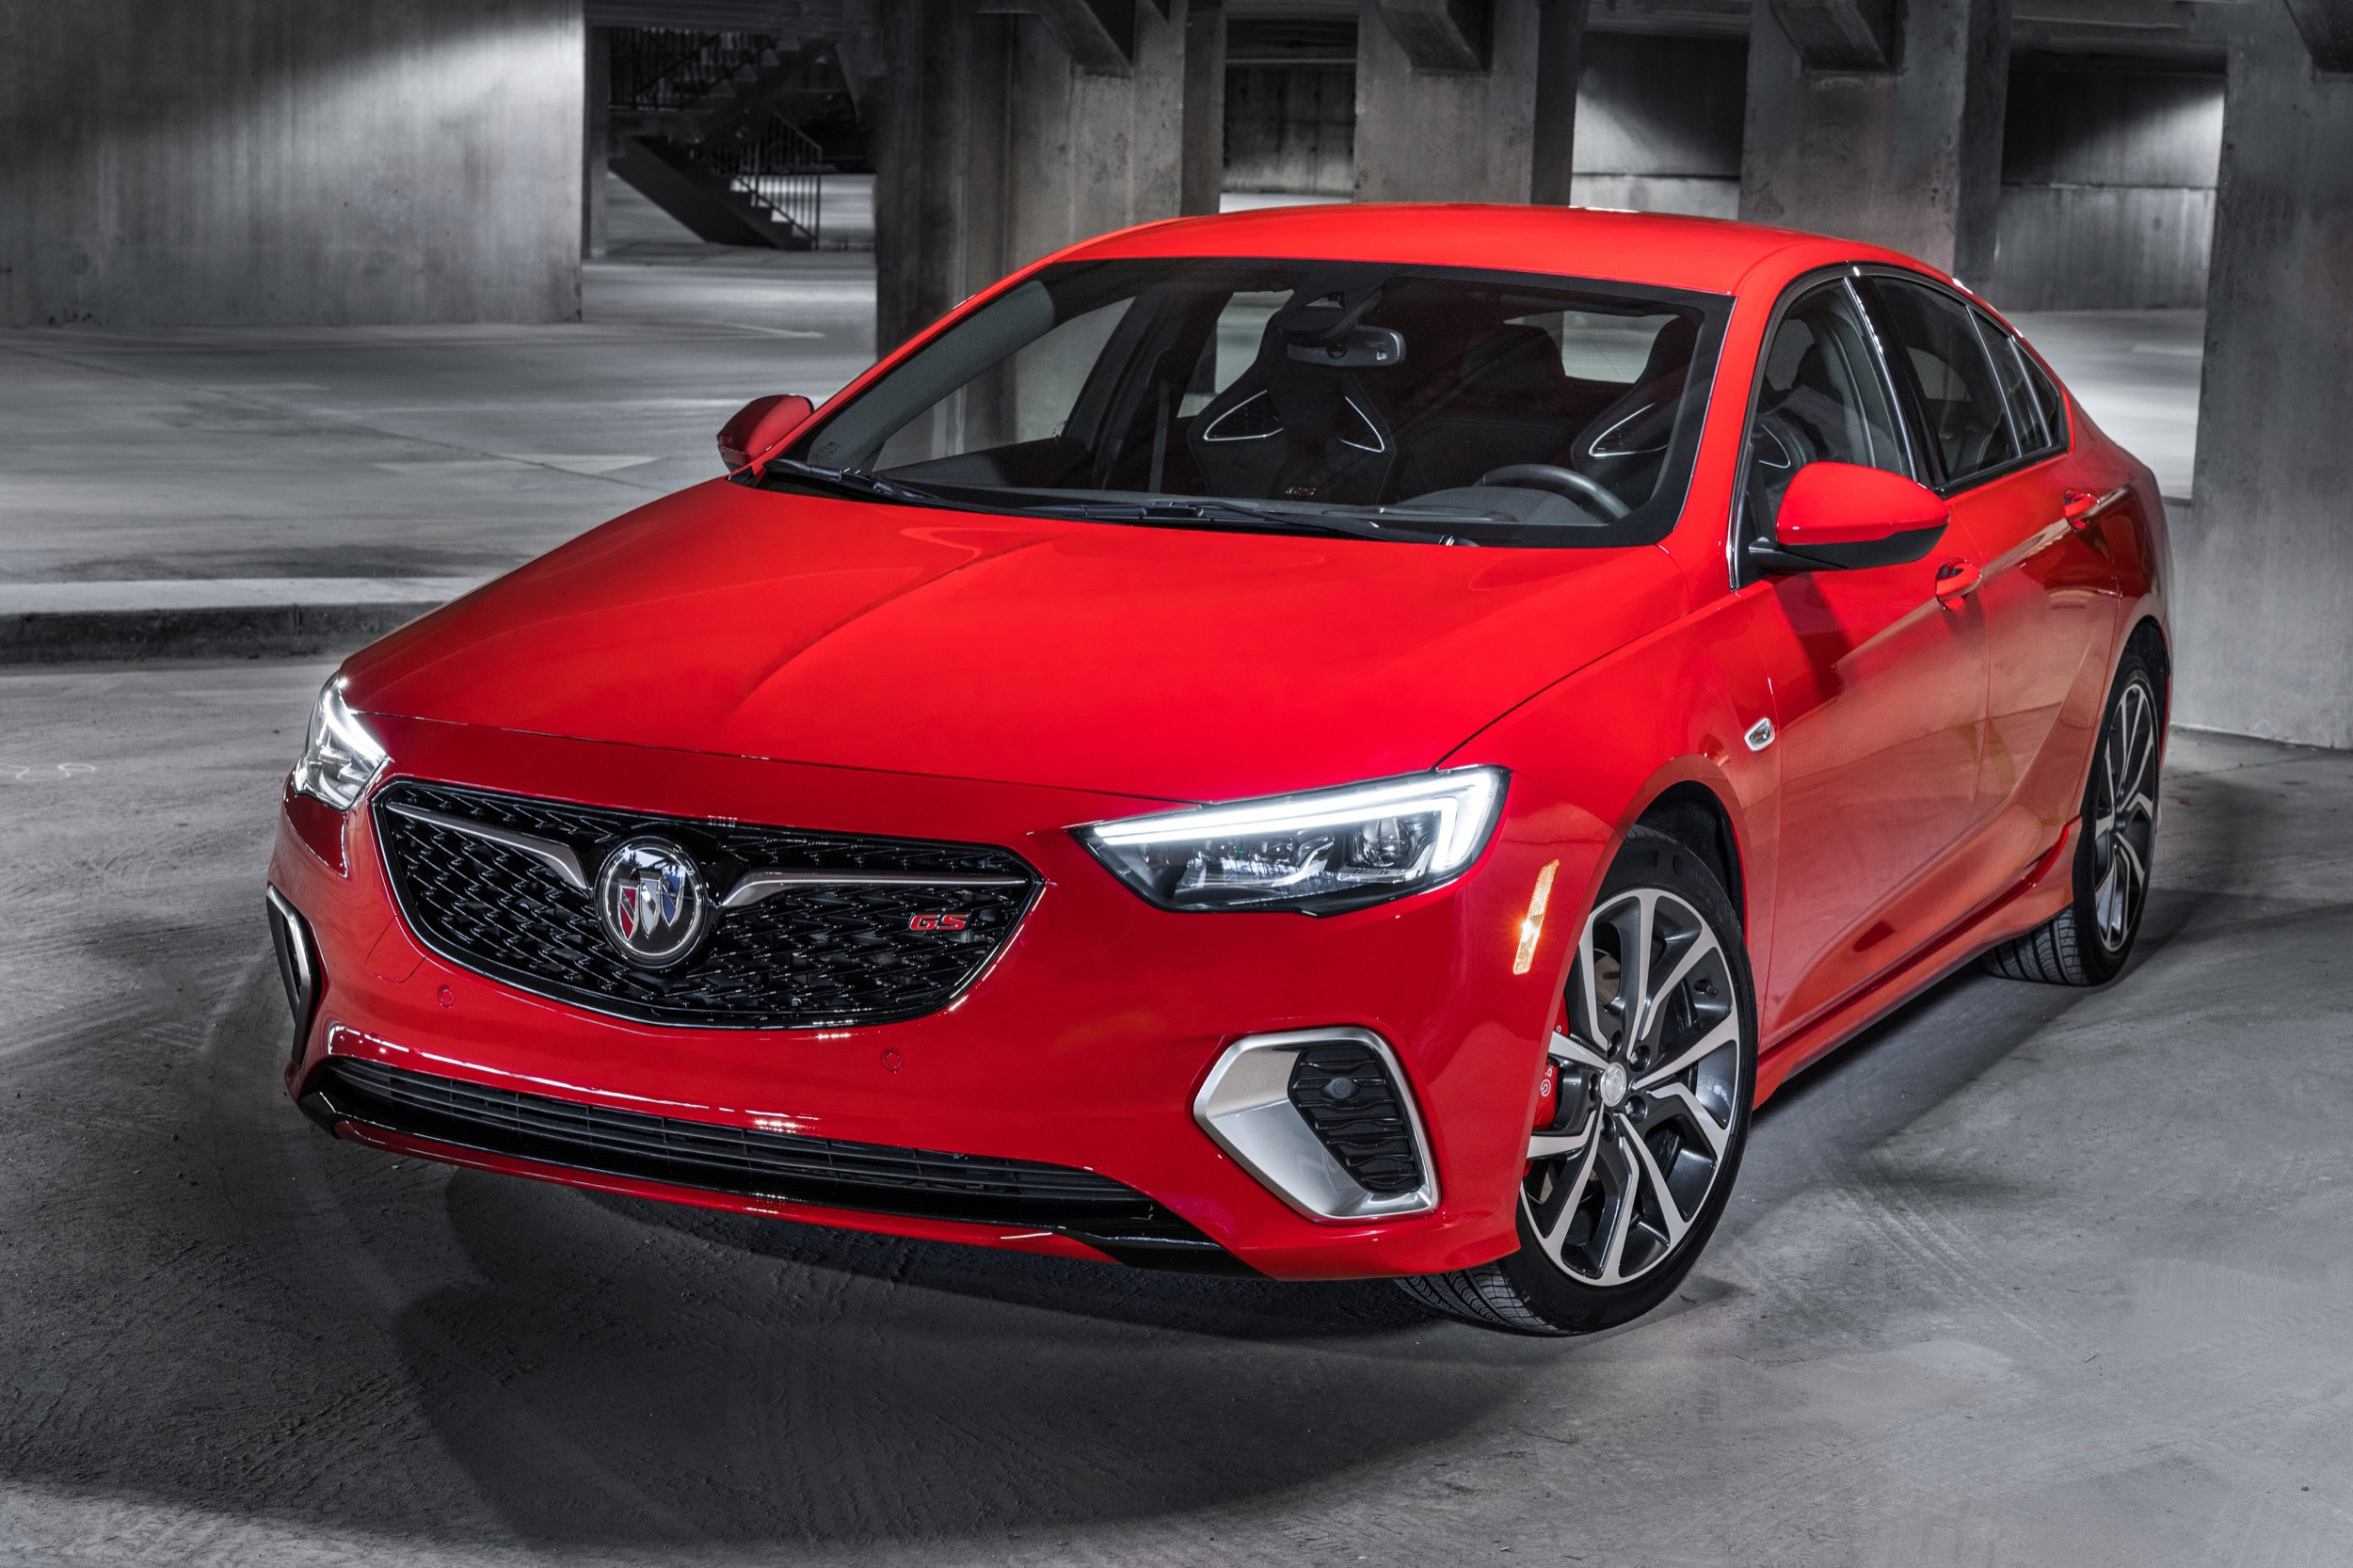 Buick Regal Discount Totals $5,500 June 2020 | Gm Authority New 2022 Buick Regal Gs Lease, Engine, Owners Manual